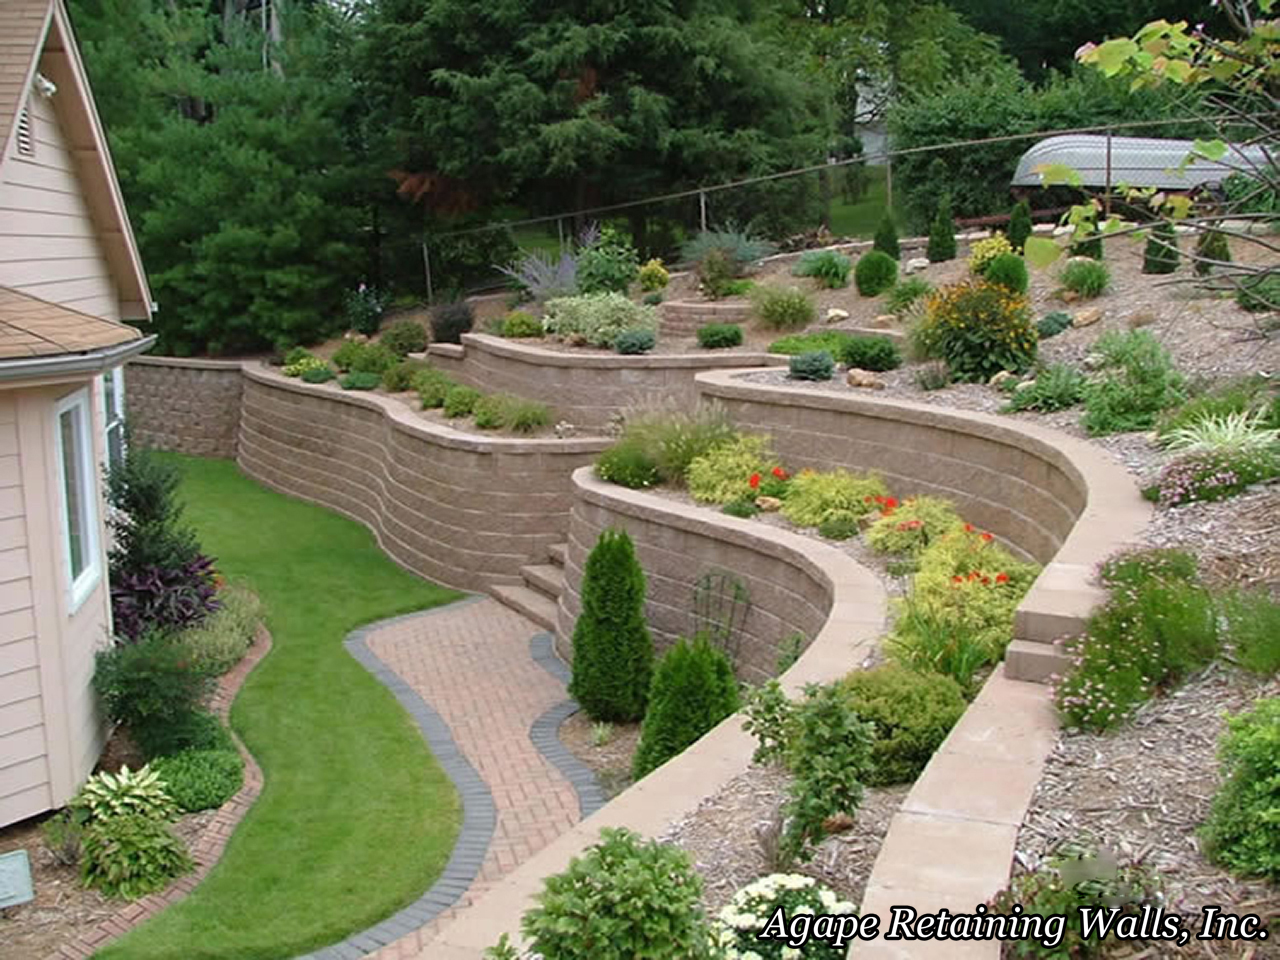 Agape retaining walls inc terrace photo album 2 - Backyard landscape designs ...